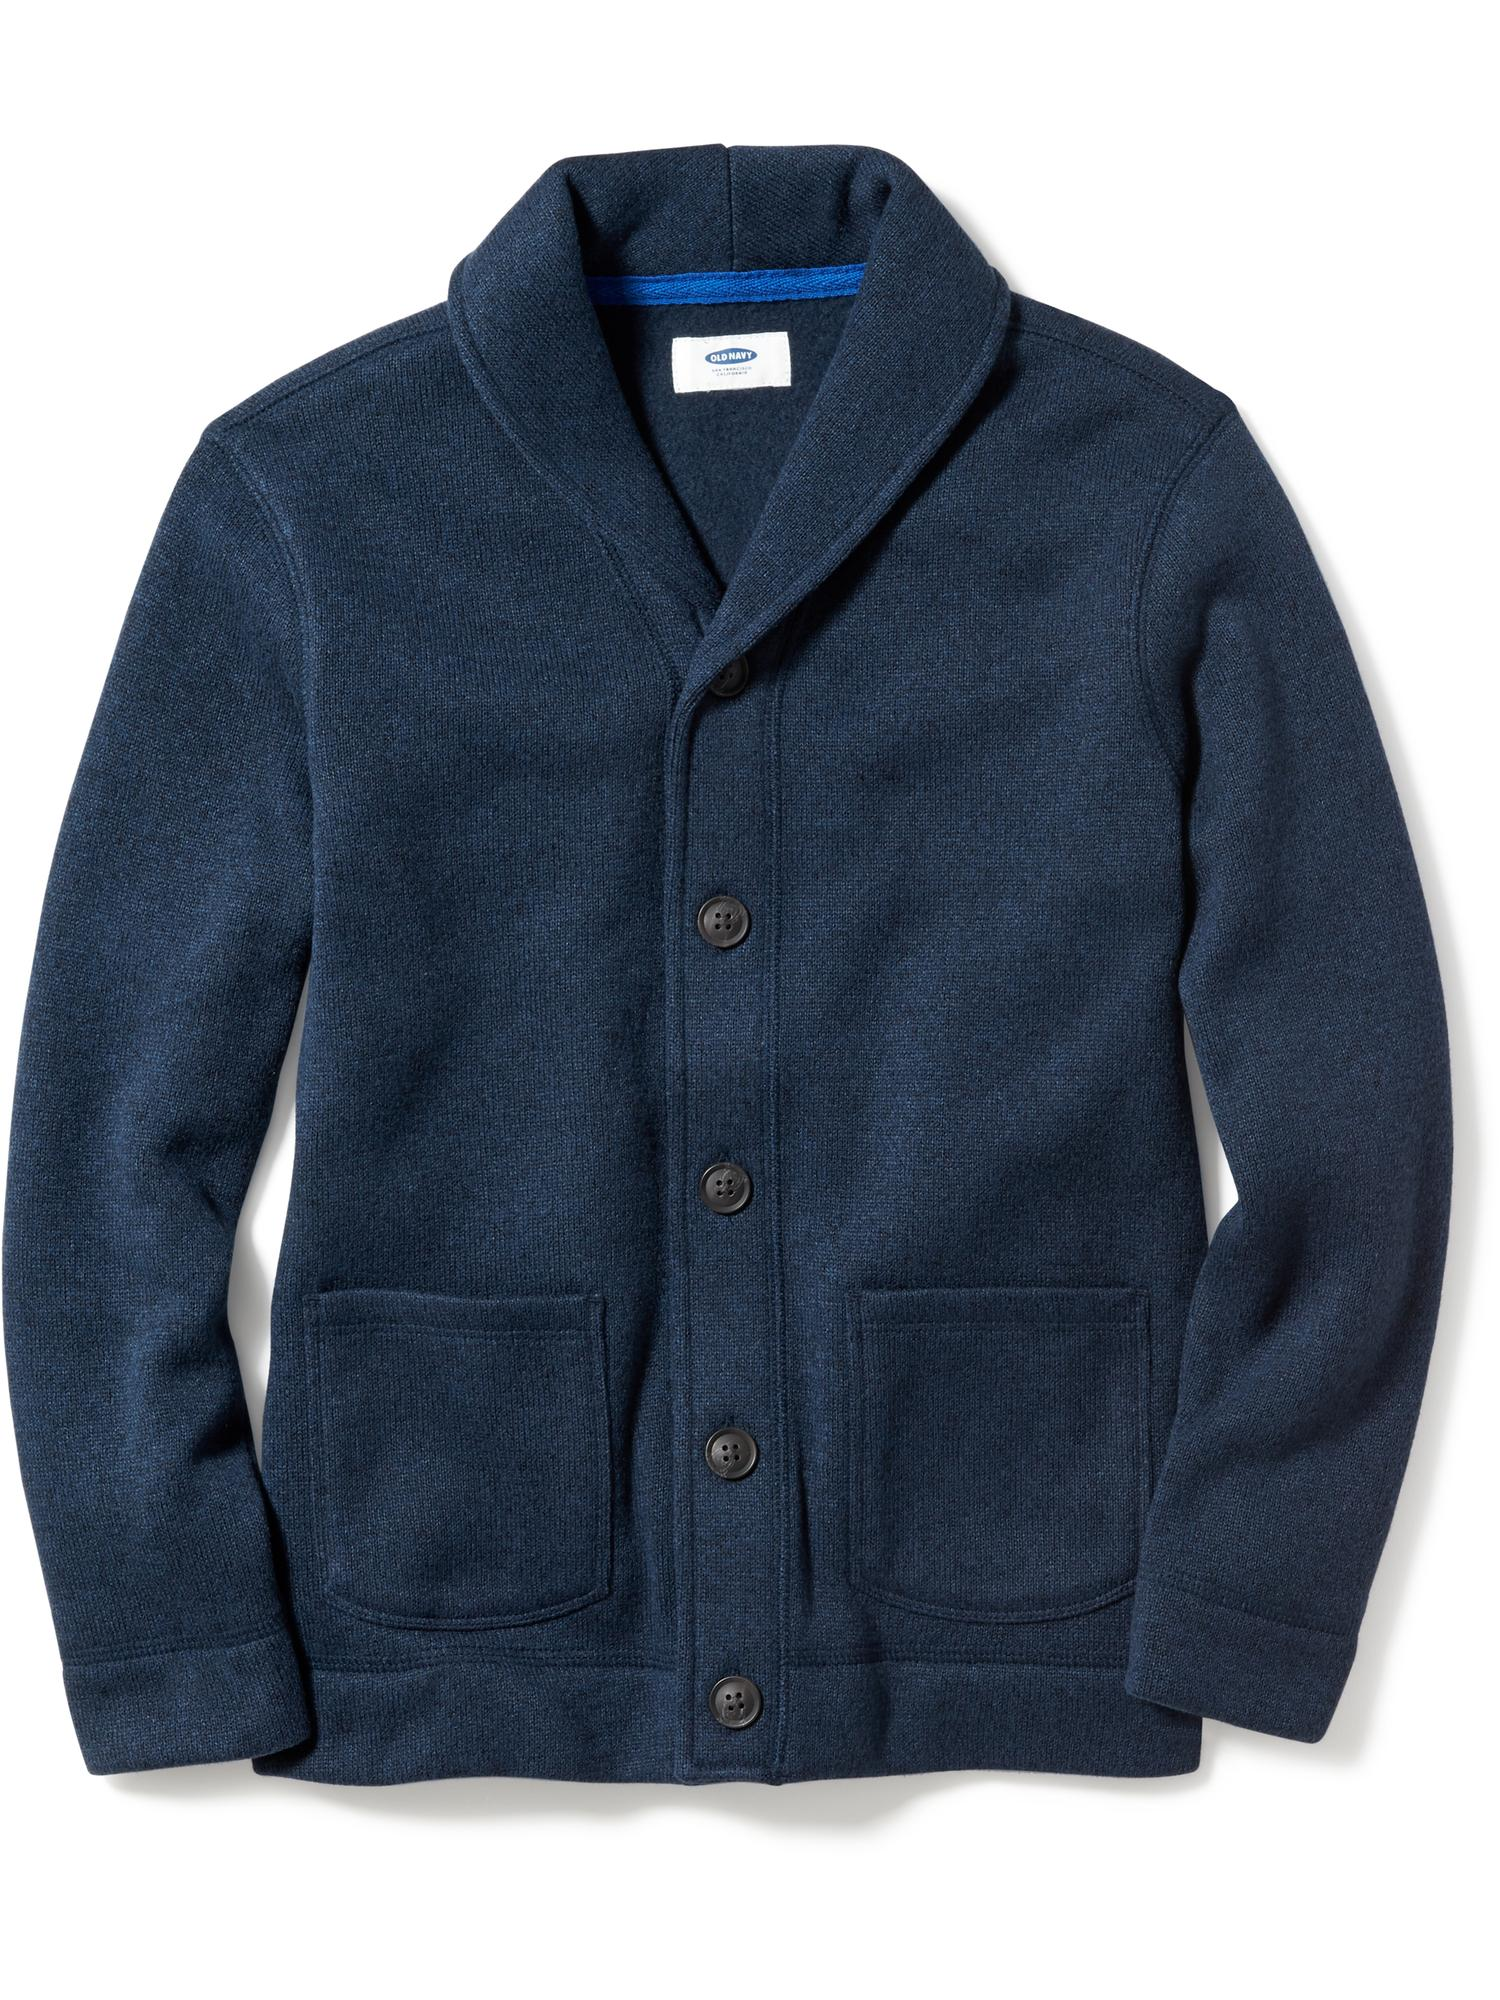 Sweater-Knit Fleece Cardigan for Boys | Old Navy